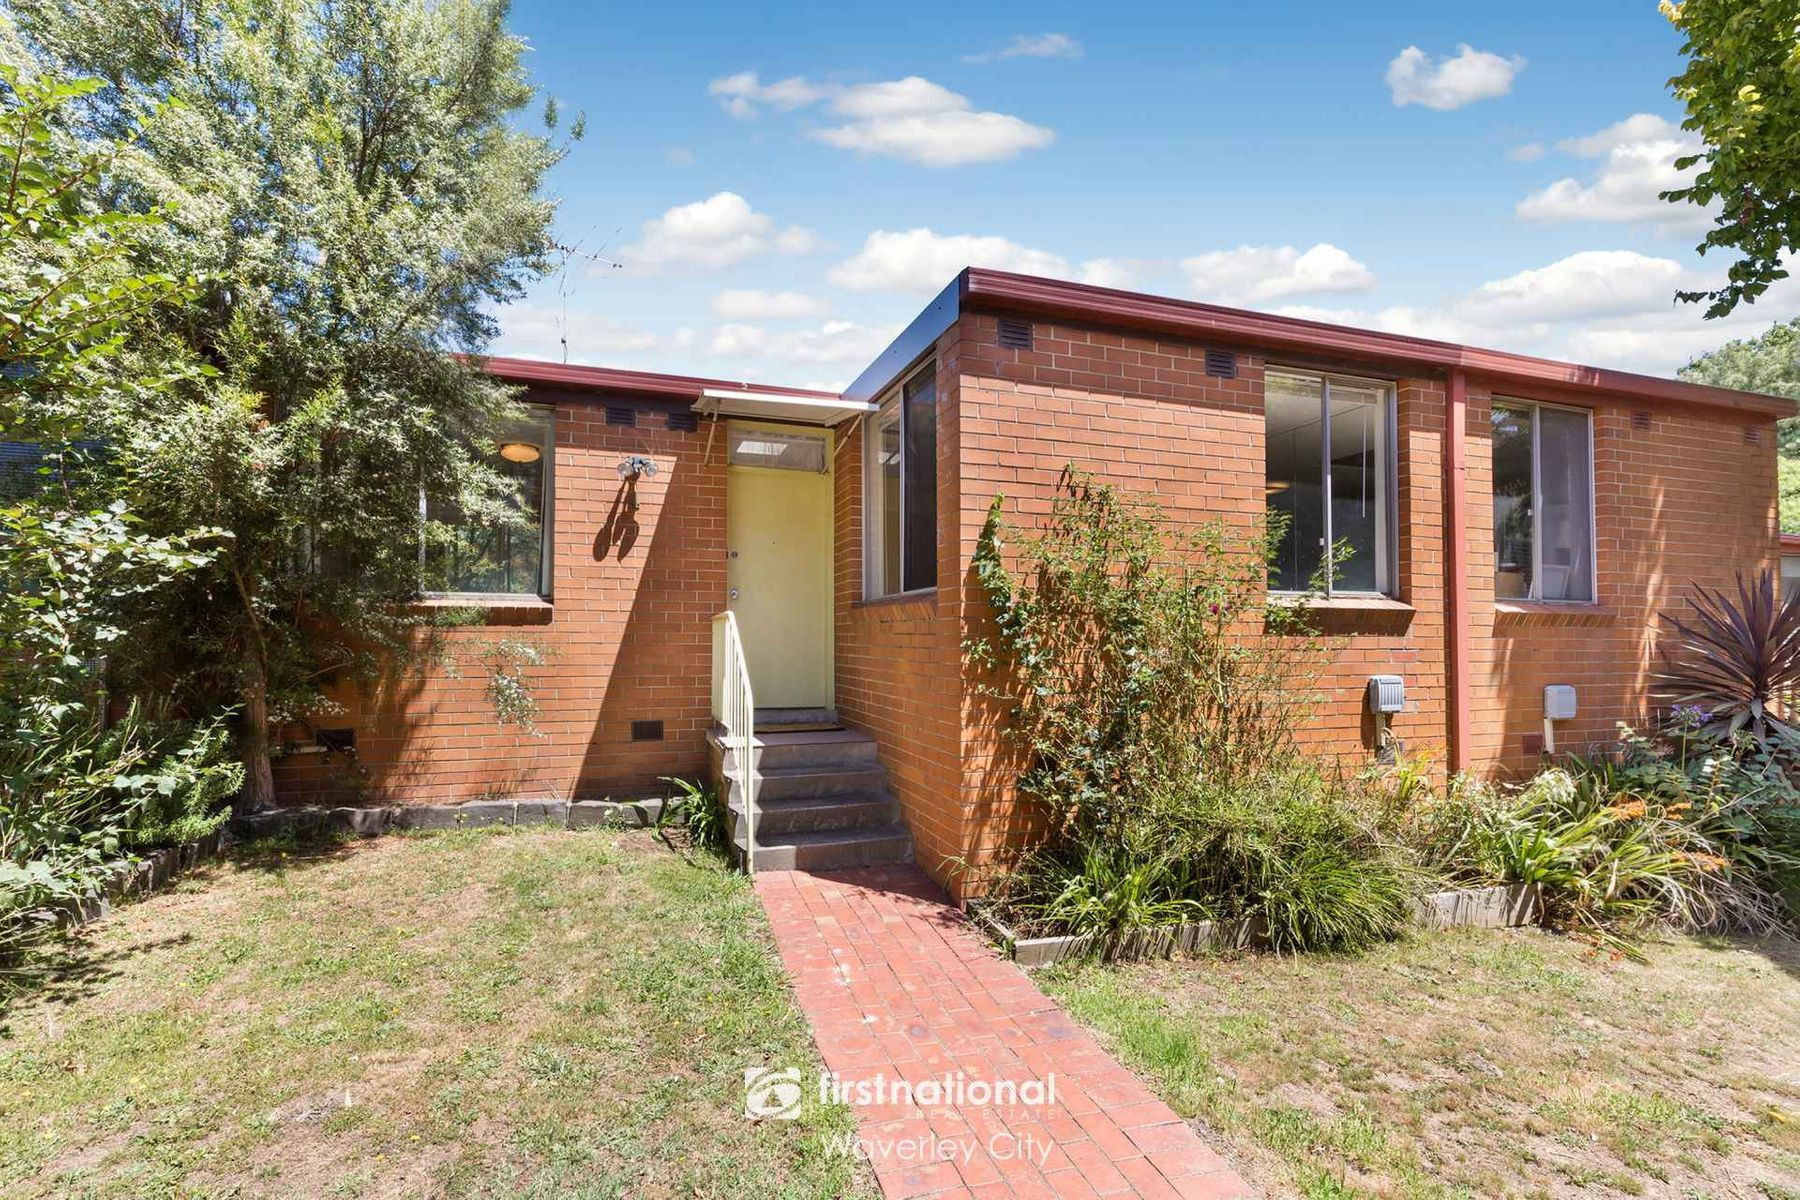 4/24 Shirley Avenue, Glen Waverley, VIC 3150